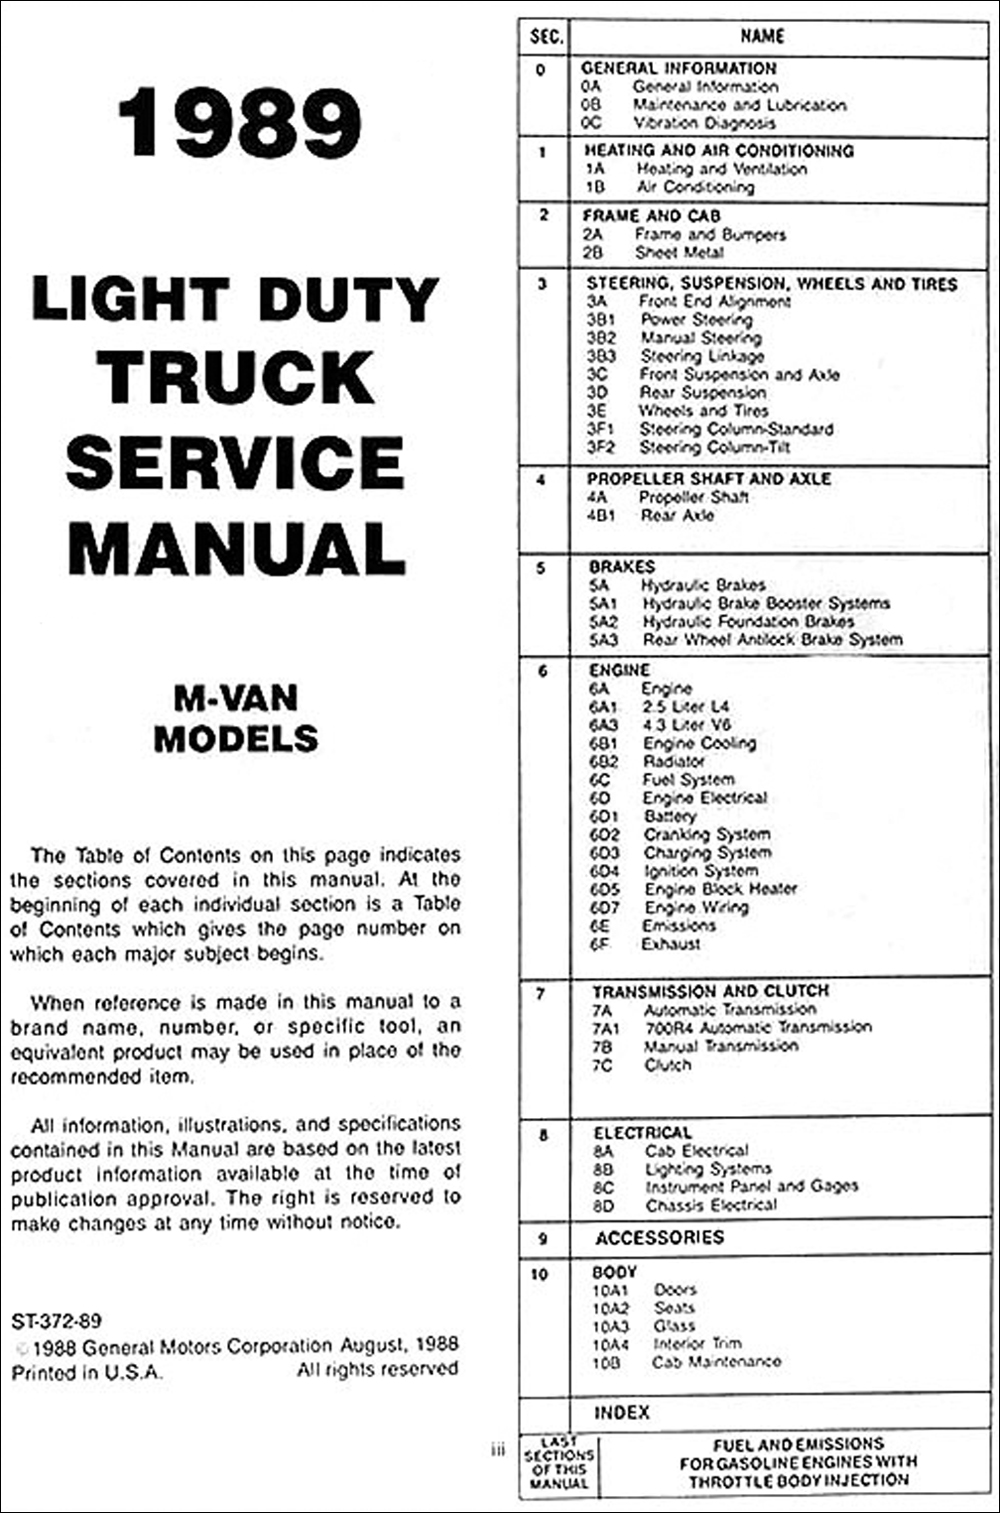 1989 Chevrolet Astro Van Shop Manual Original. click on thumbnail to zoom